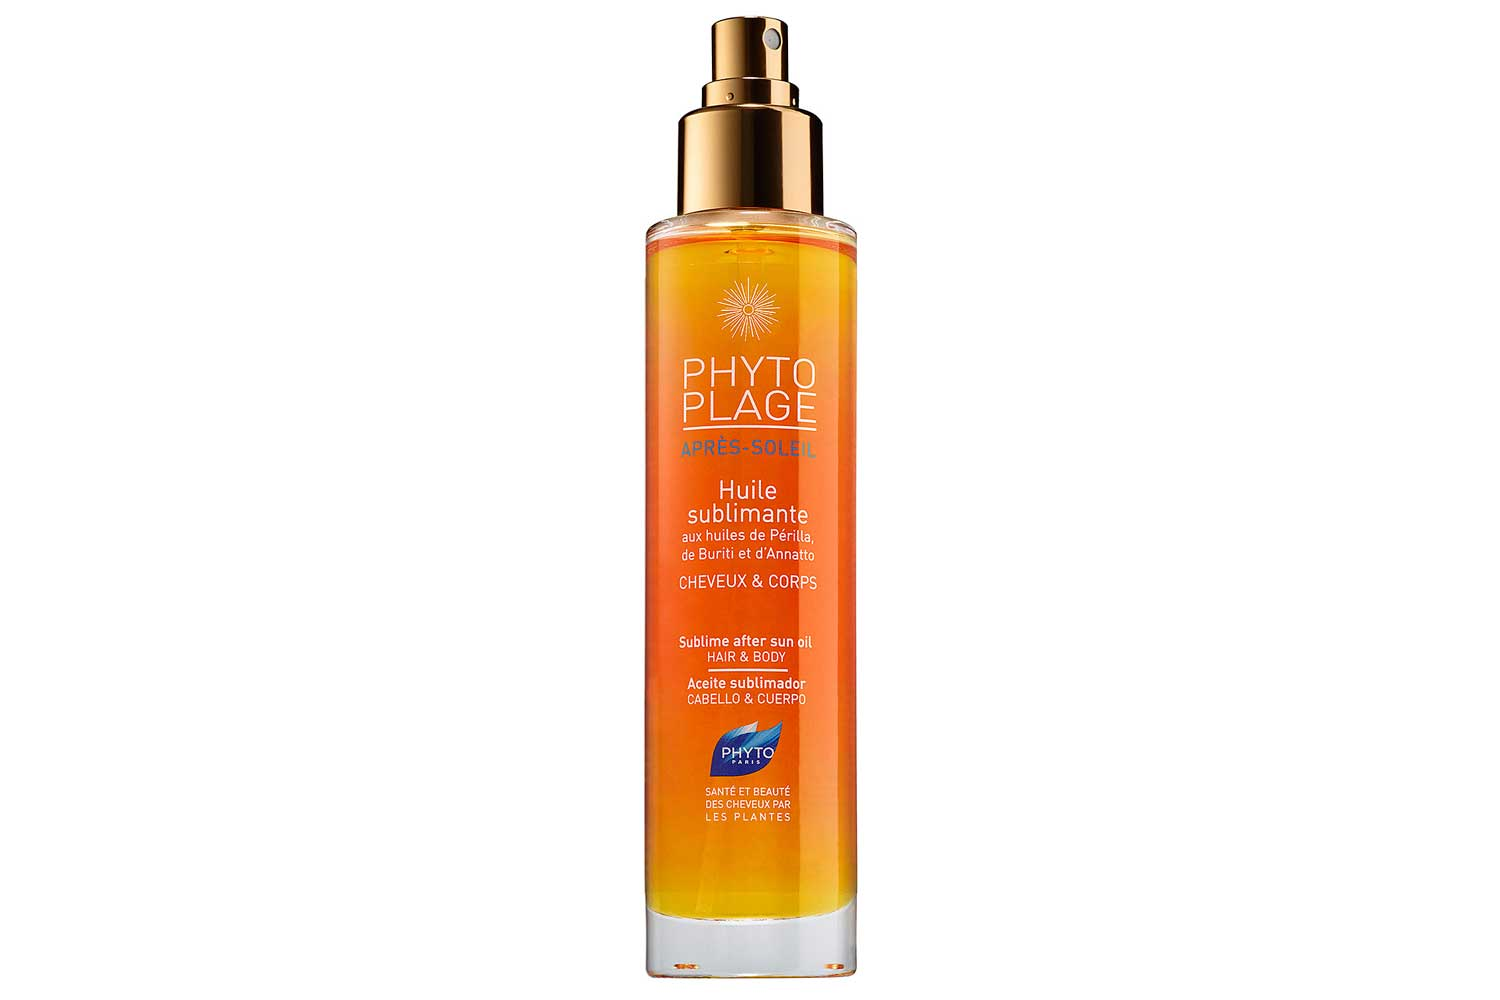 Phyto Phytoplage Sublime After Sun Hair and Body Oil